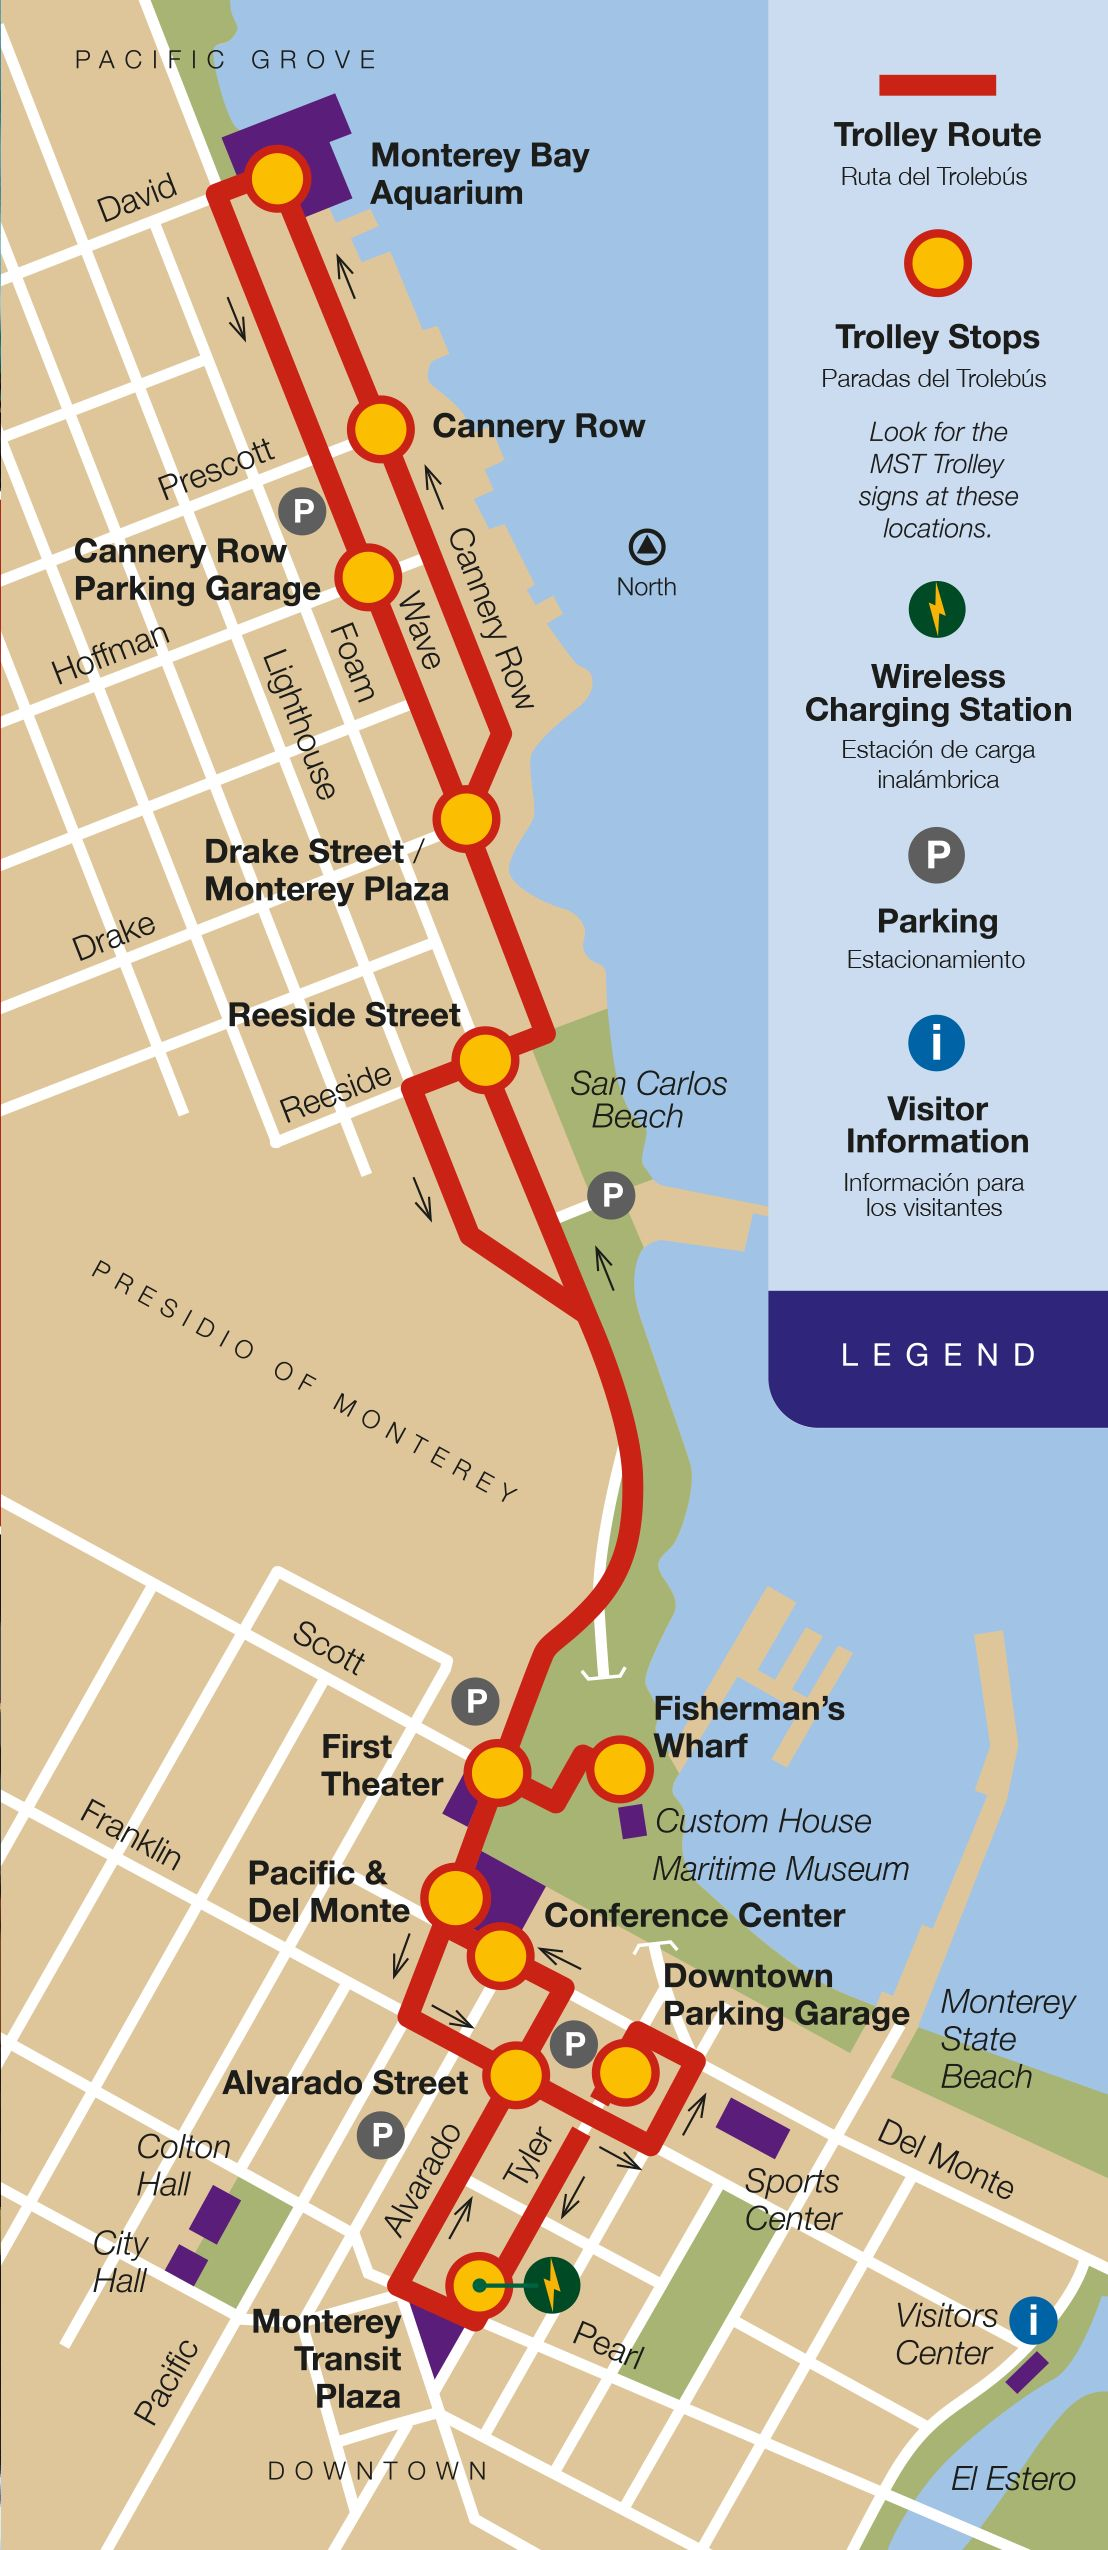 Monterey Trolley Map | San Francisco in 2019 | City of ... on map of washington national parks, map of missoula parks, map of sarasota parks, map of western state parks, map of green bay parks, map of concord parks, map of tallahassee parks, map of new haven parks, map of alhambra parks, map of berkeley parks, map of milwaukee parks, map ca parks, map of billings parks, map of allentown parks, map of u.s. state parks, map of maricopa county parks, map of singapore parks, map of savannah parks, map of simi valley parks, map of riverside county parks,